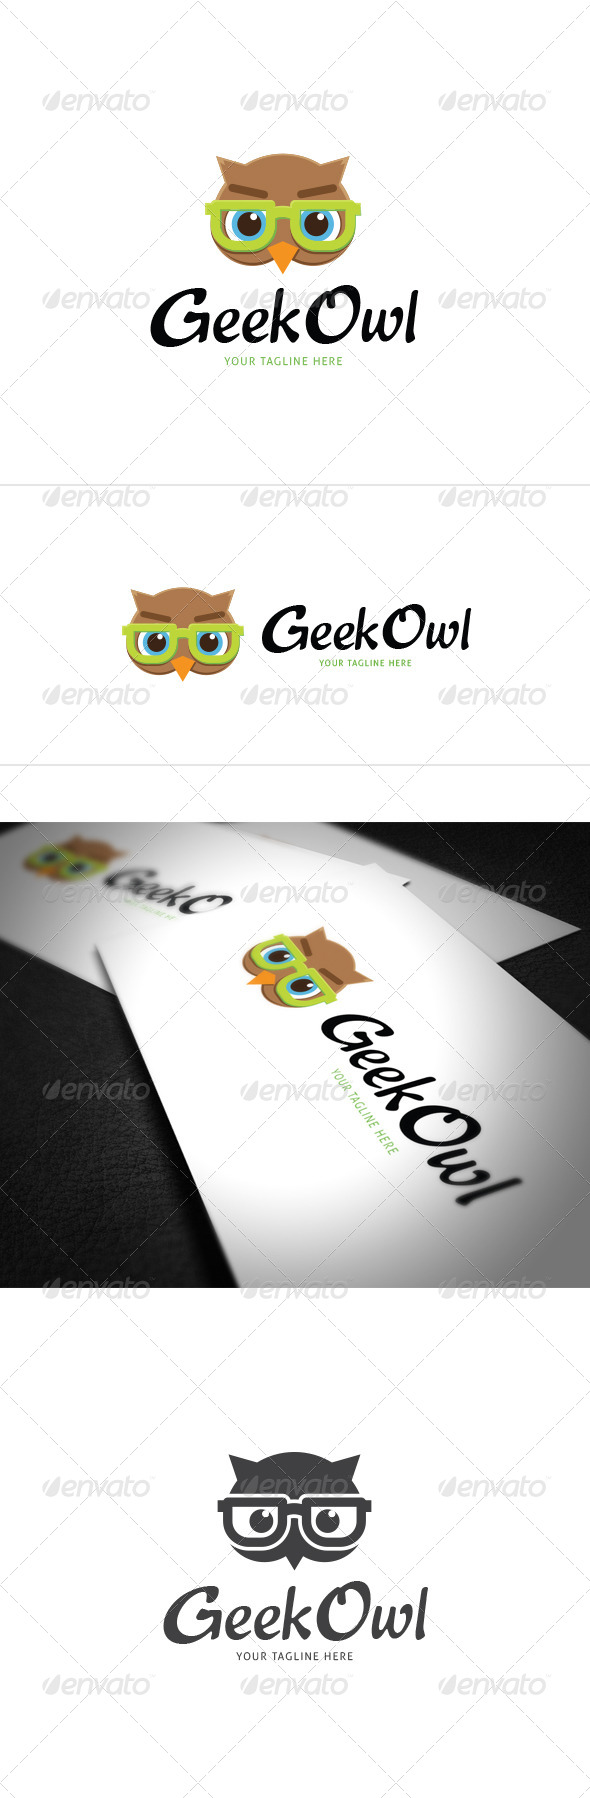 GraphicRiver Geek Owl Logo Template 7994320